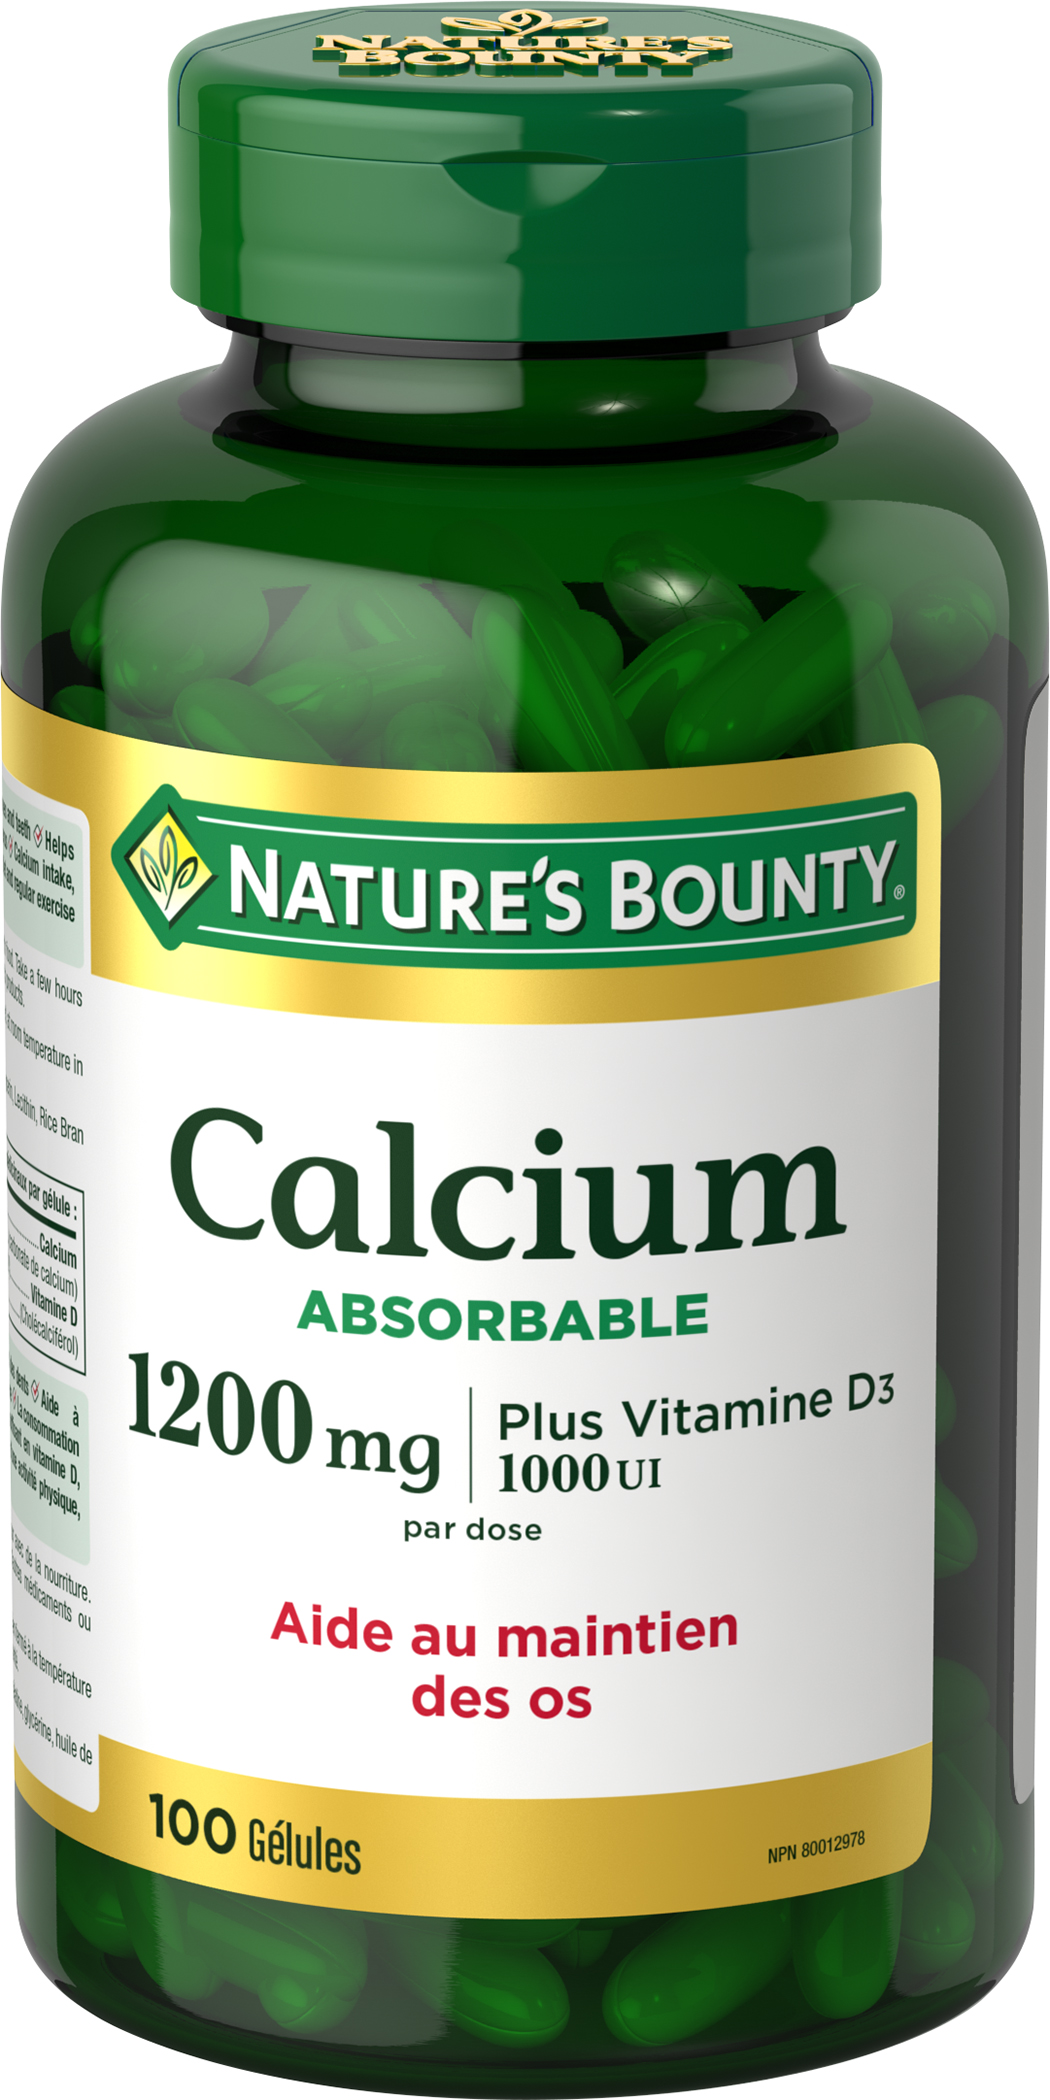 Calcium Absorbable plus Vitamine D3